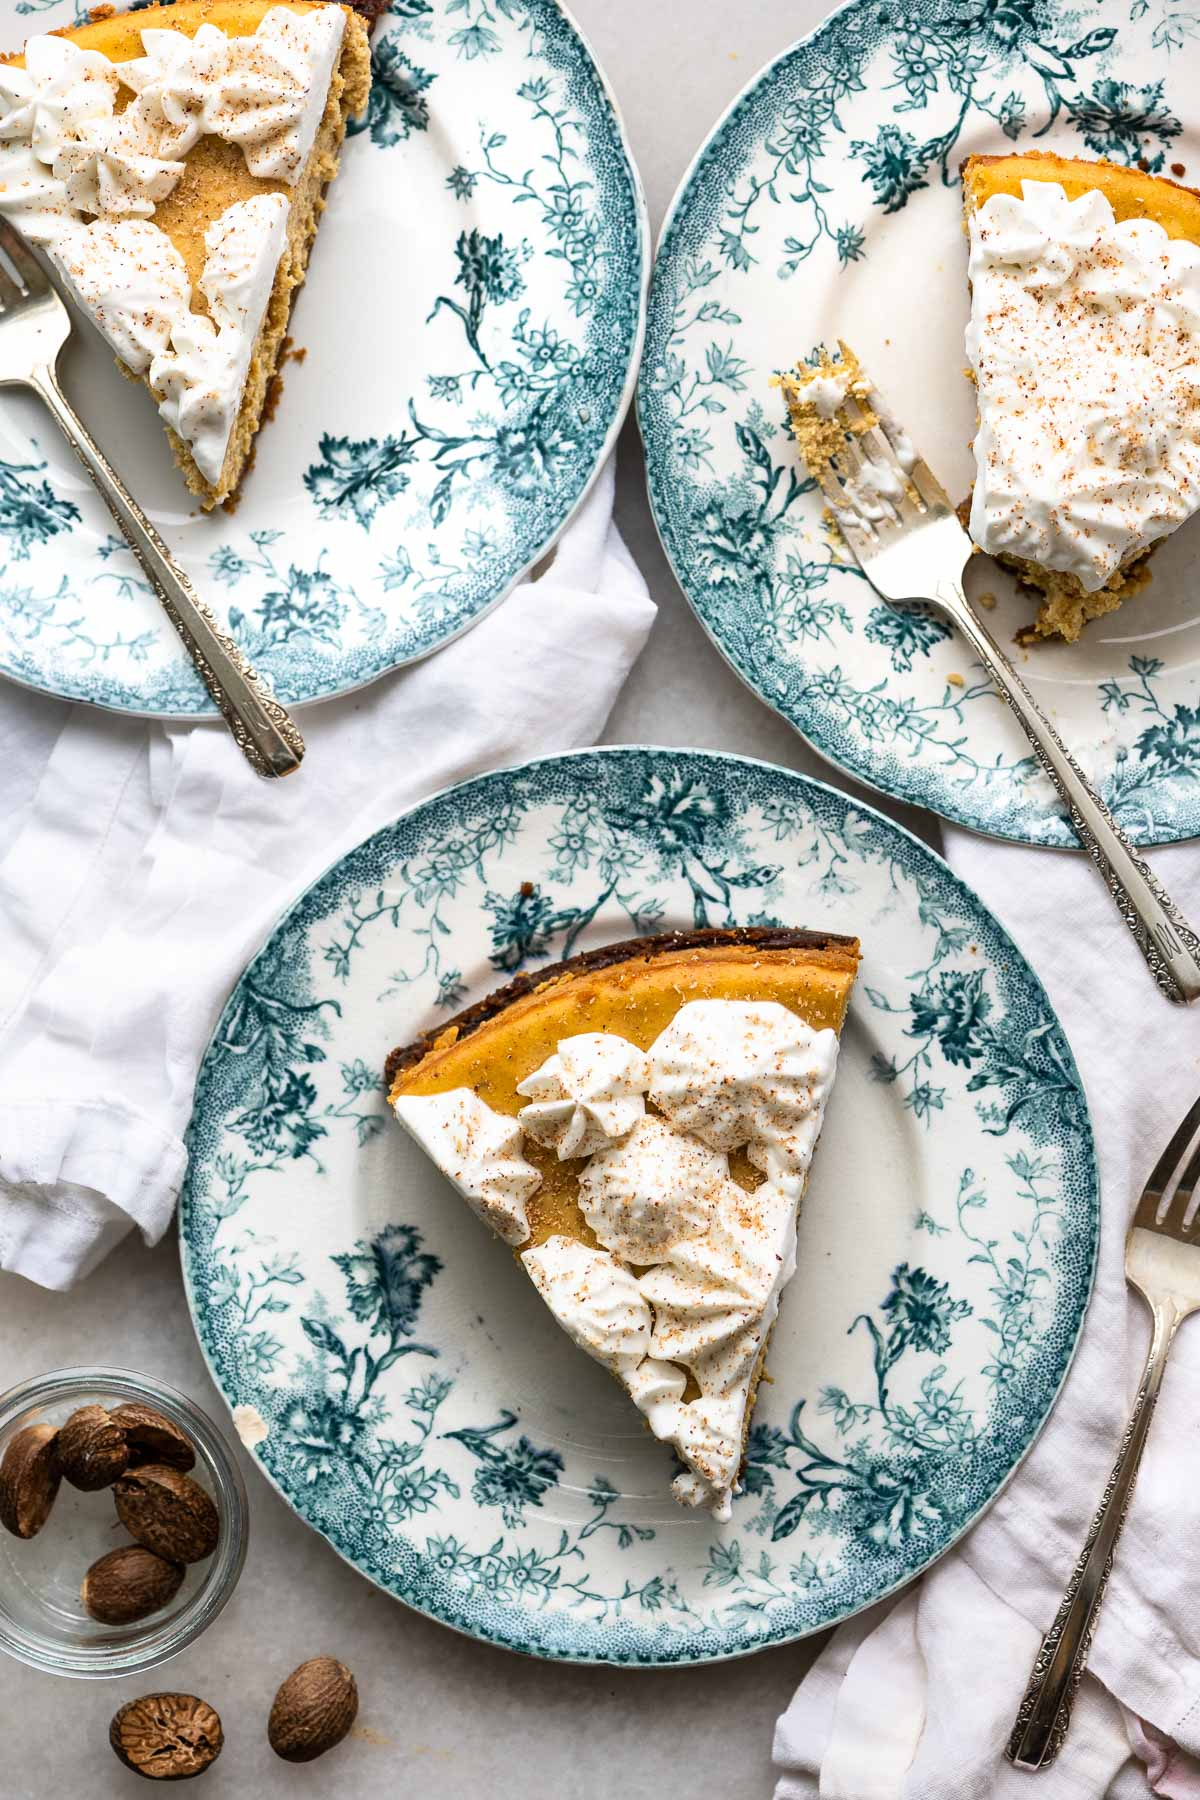 slices of pumpkin cheesecake on blue floral plates